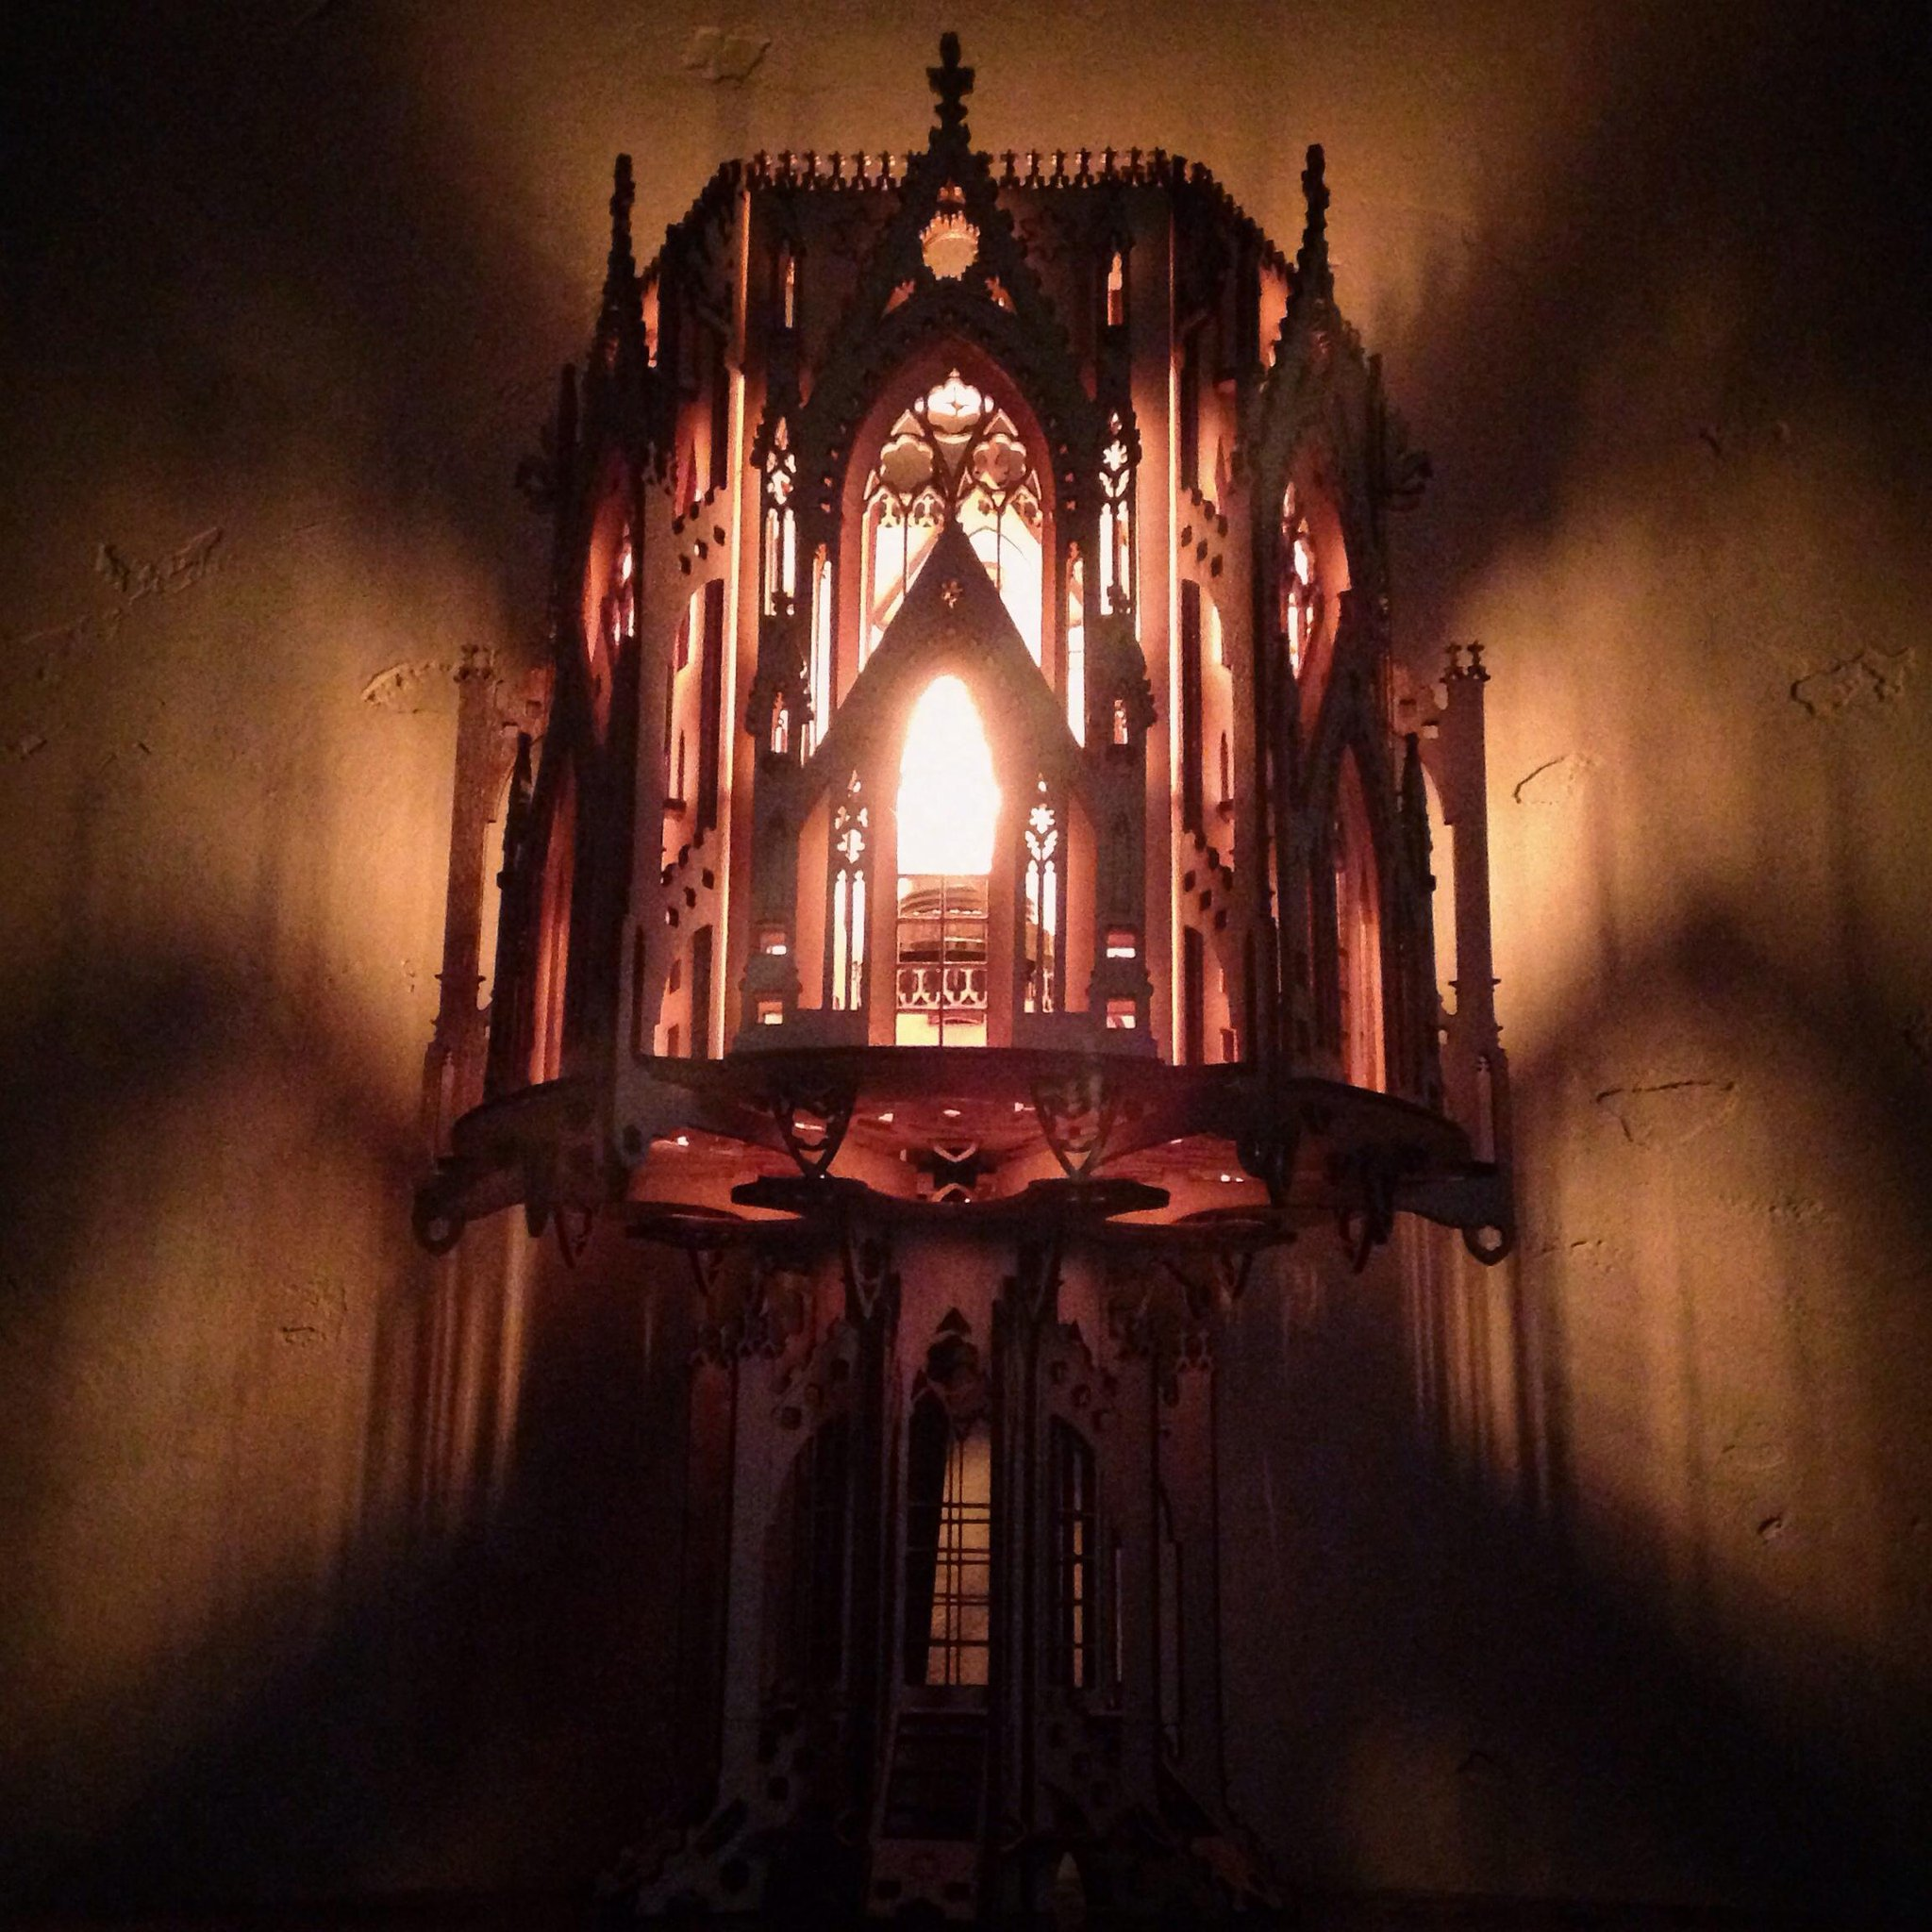 ...and my new wooden gothic-architectural puzzle-lamp is complete! #DIY http://t.co/xCfH1LSe8T